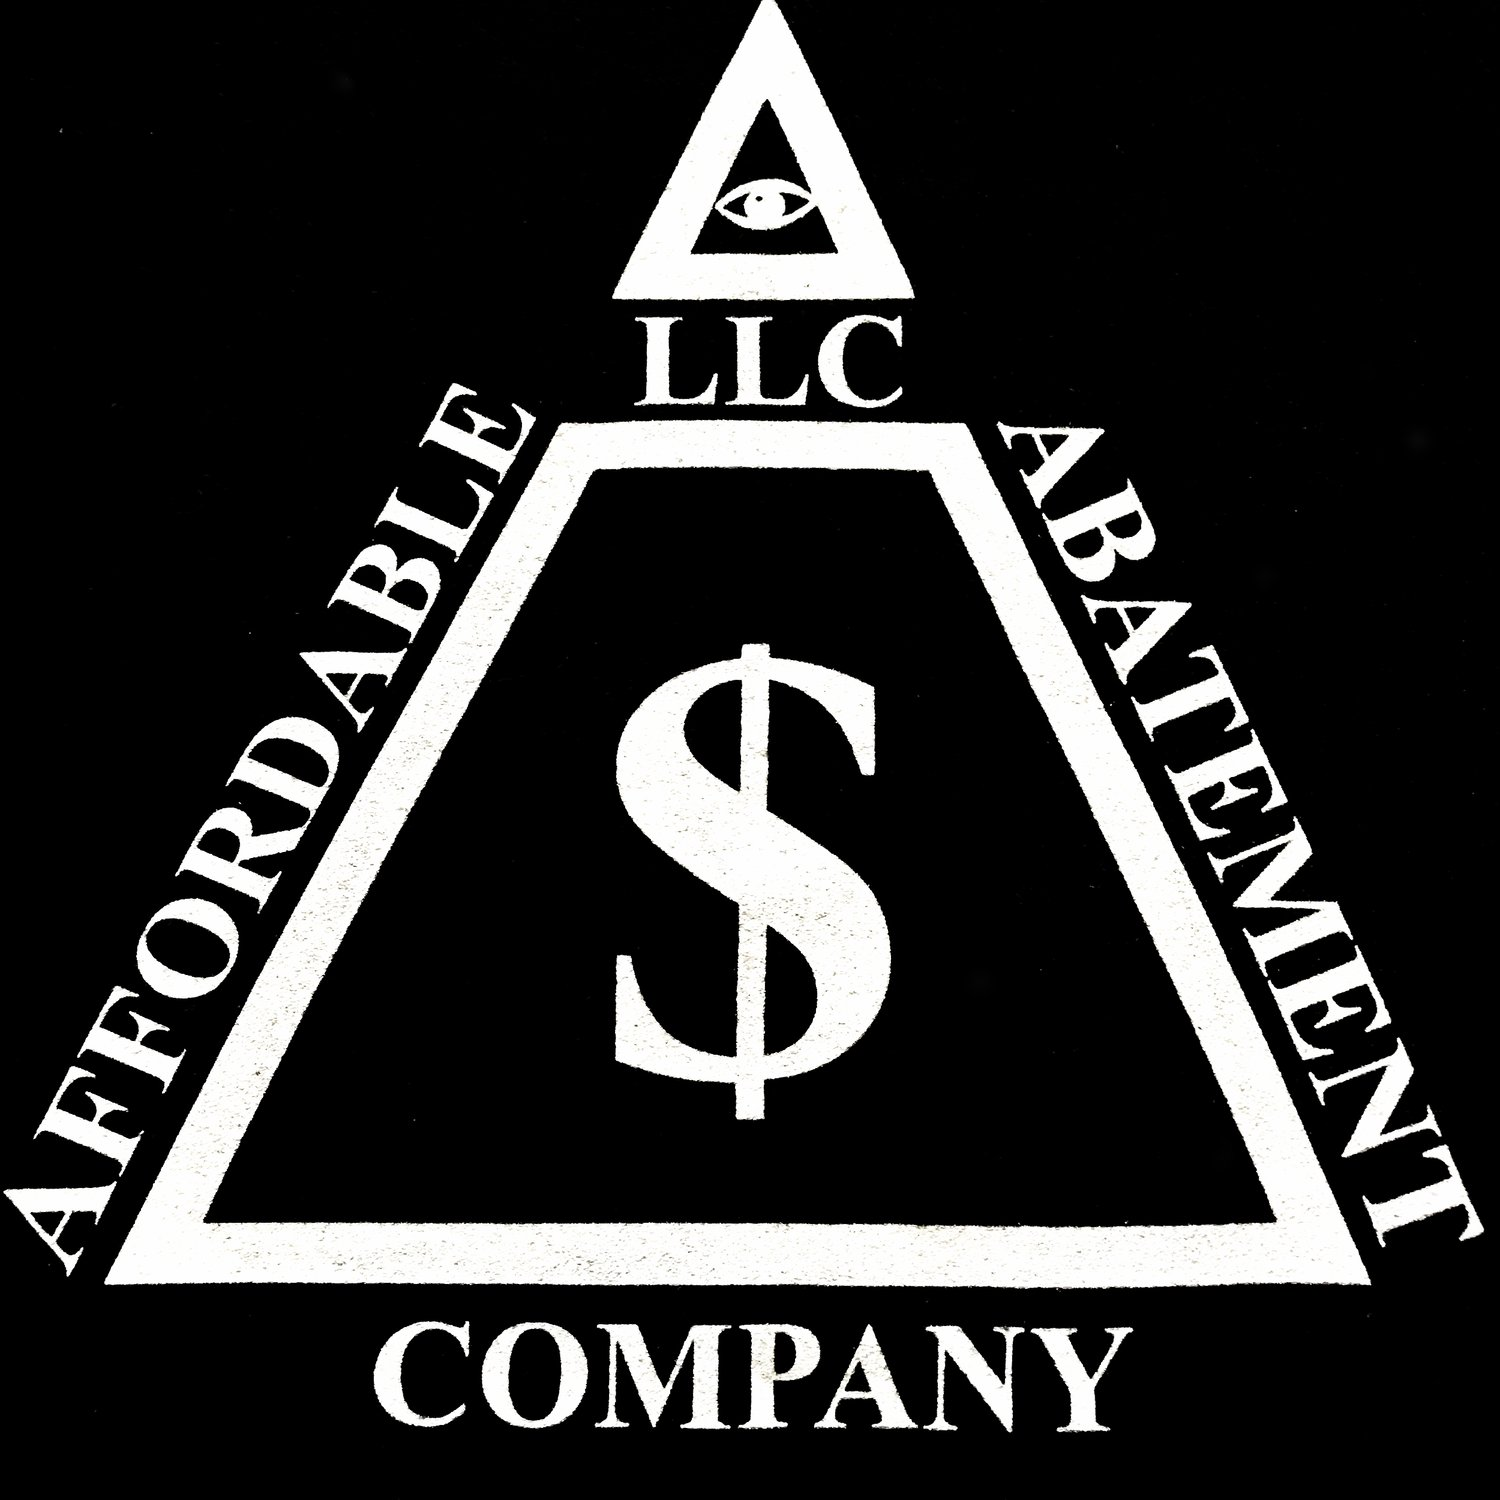 Affordable Abatement Co. LLC